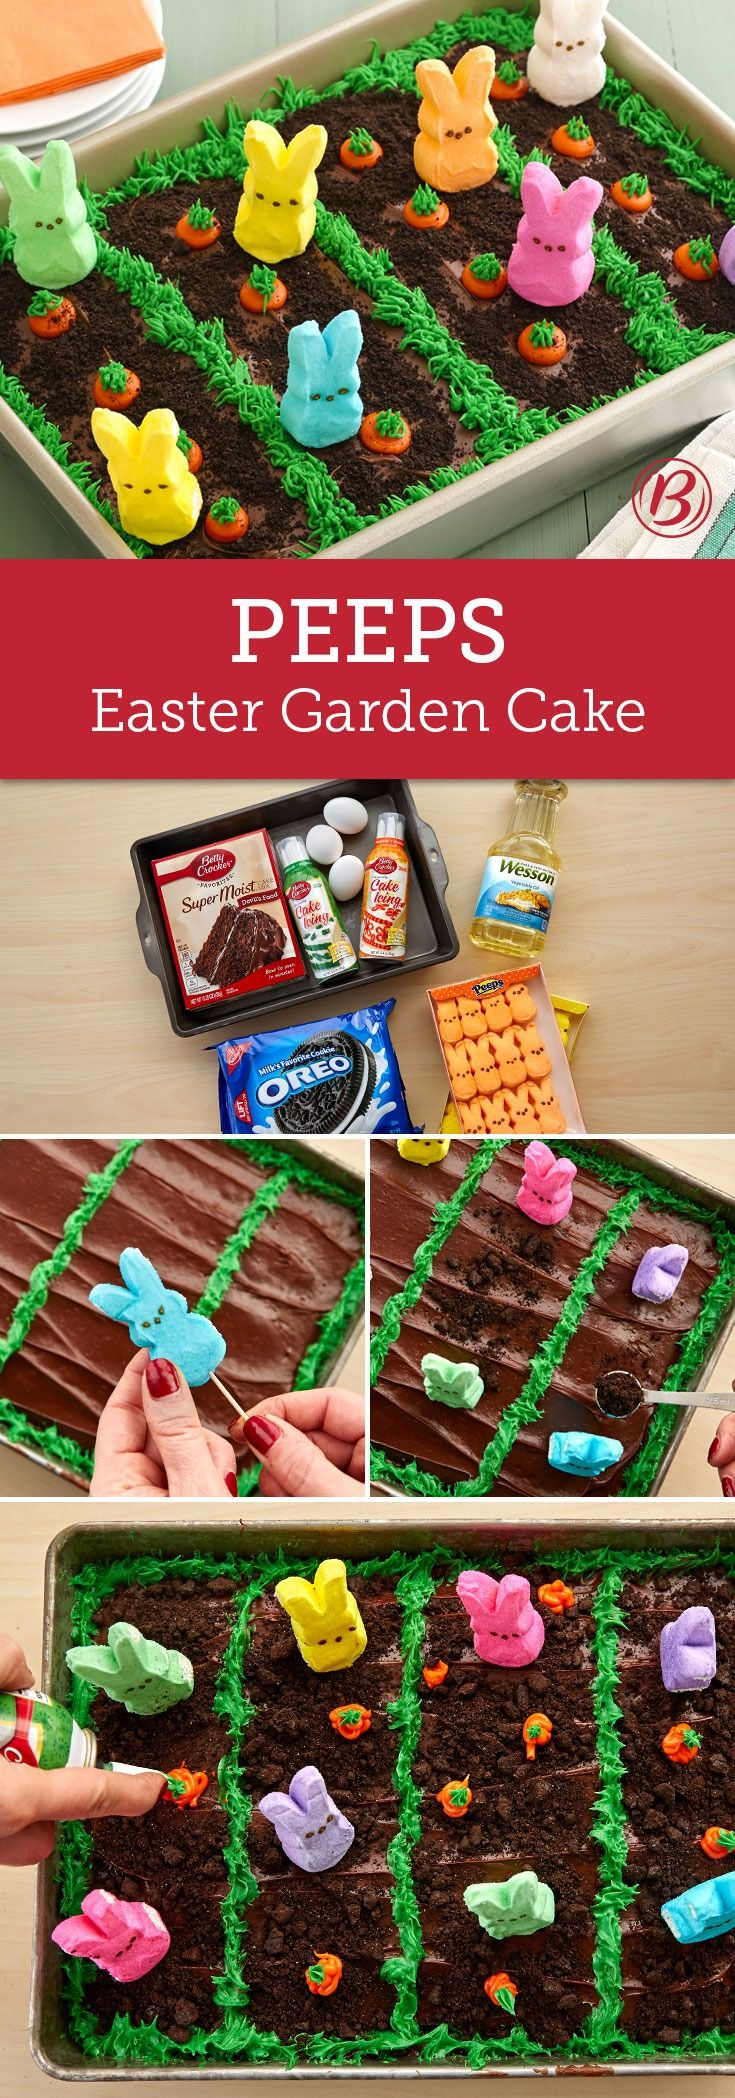 "An ordinary chocolate sheet cake gets transformed into an Easter garden scene with this creative recipe that is brought to life with Peeps! Bright orange and green frosting makes the carrots pop in their chocolaty ""dirt"" rows, while crumbled Oreos give the garden a perfect dusting. A too-cute treat the kids will love to see at the Easter dessert spread"